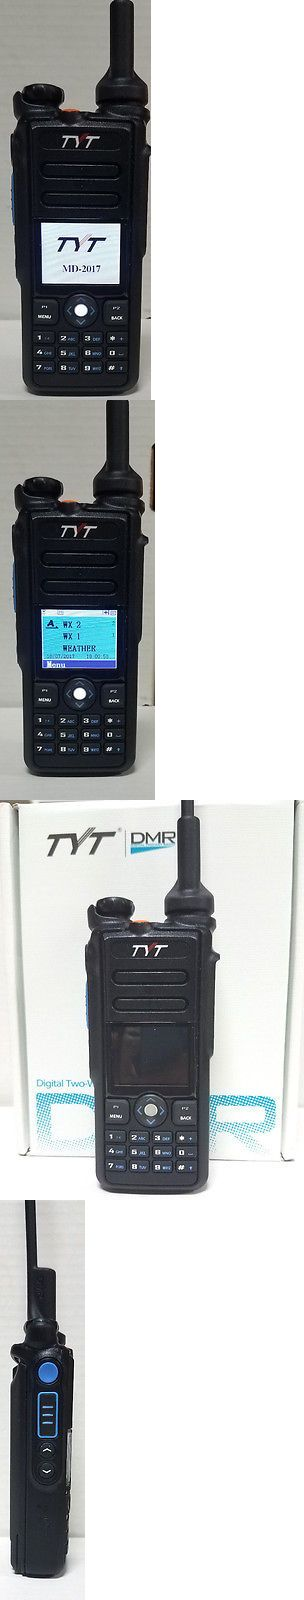 Ham Radio Transceivers: Tyt Md-2017 Dual Band Dmr Analog Ht W Usb Prog Cable And Software Free Ship -> BUY IT NOW ONLY: $219 on eBay!